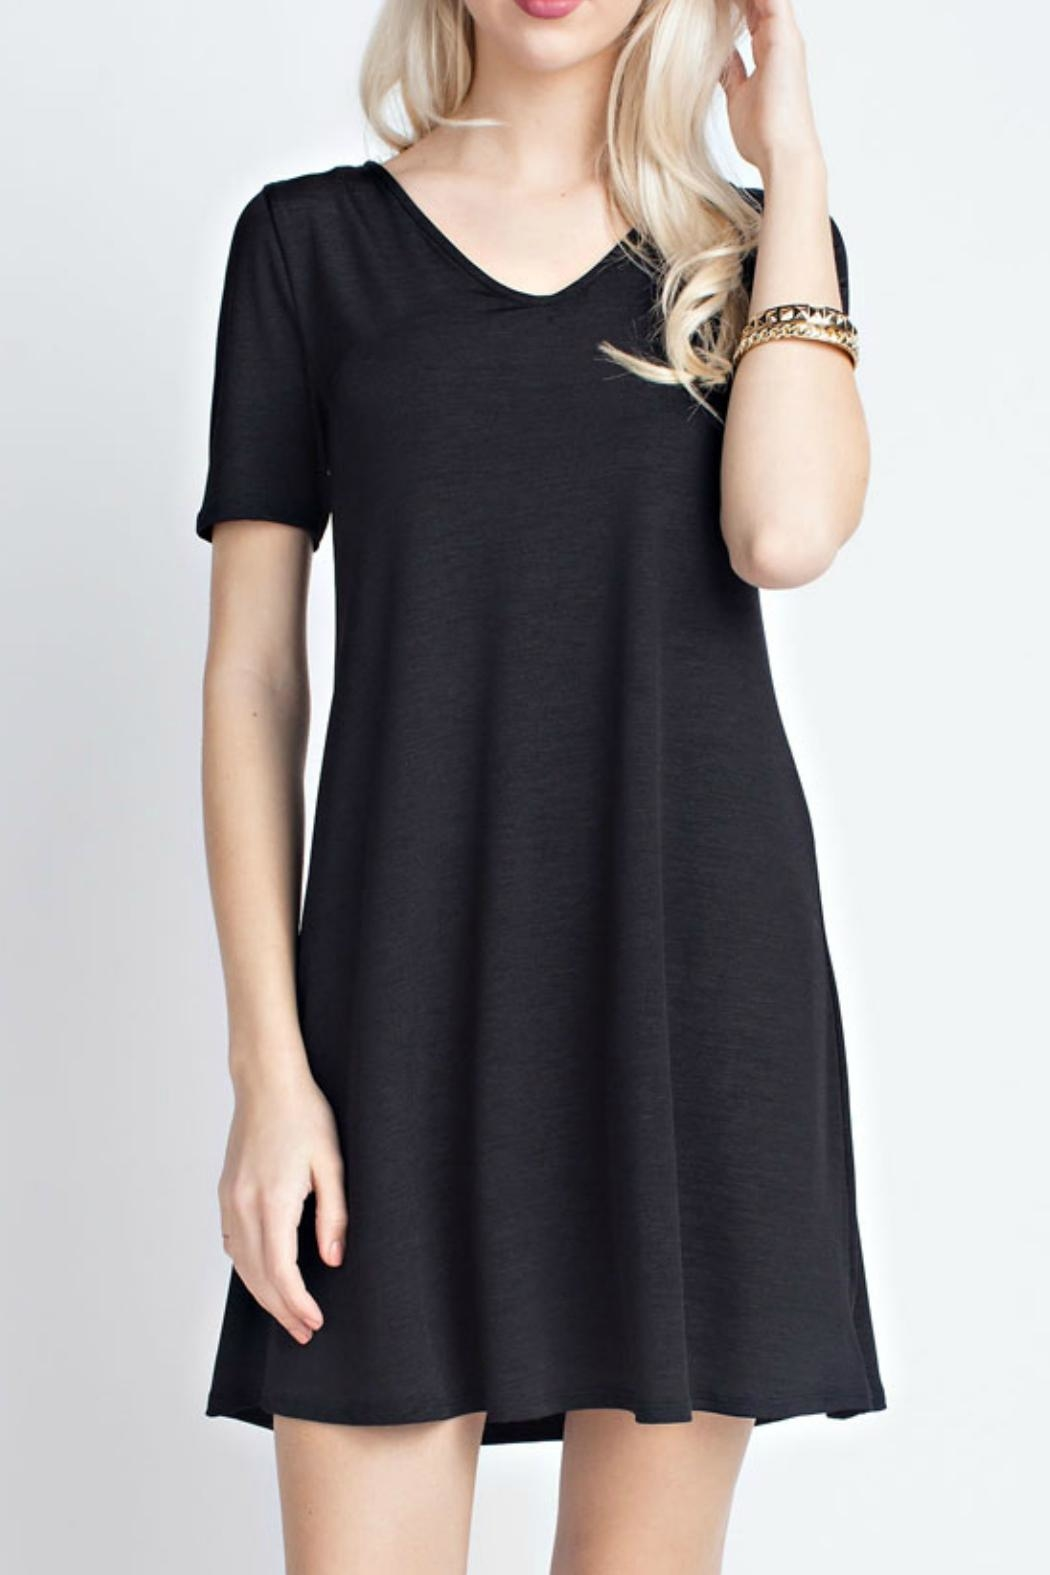 12pm by Mon Ami Black Trendy Dress - Main Image